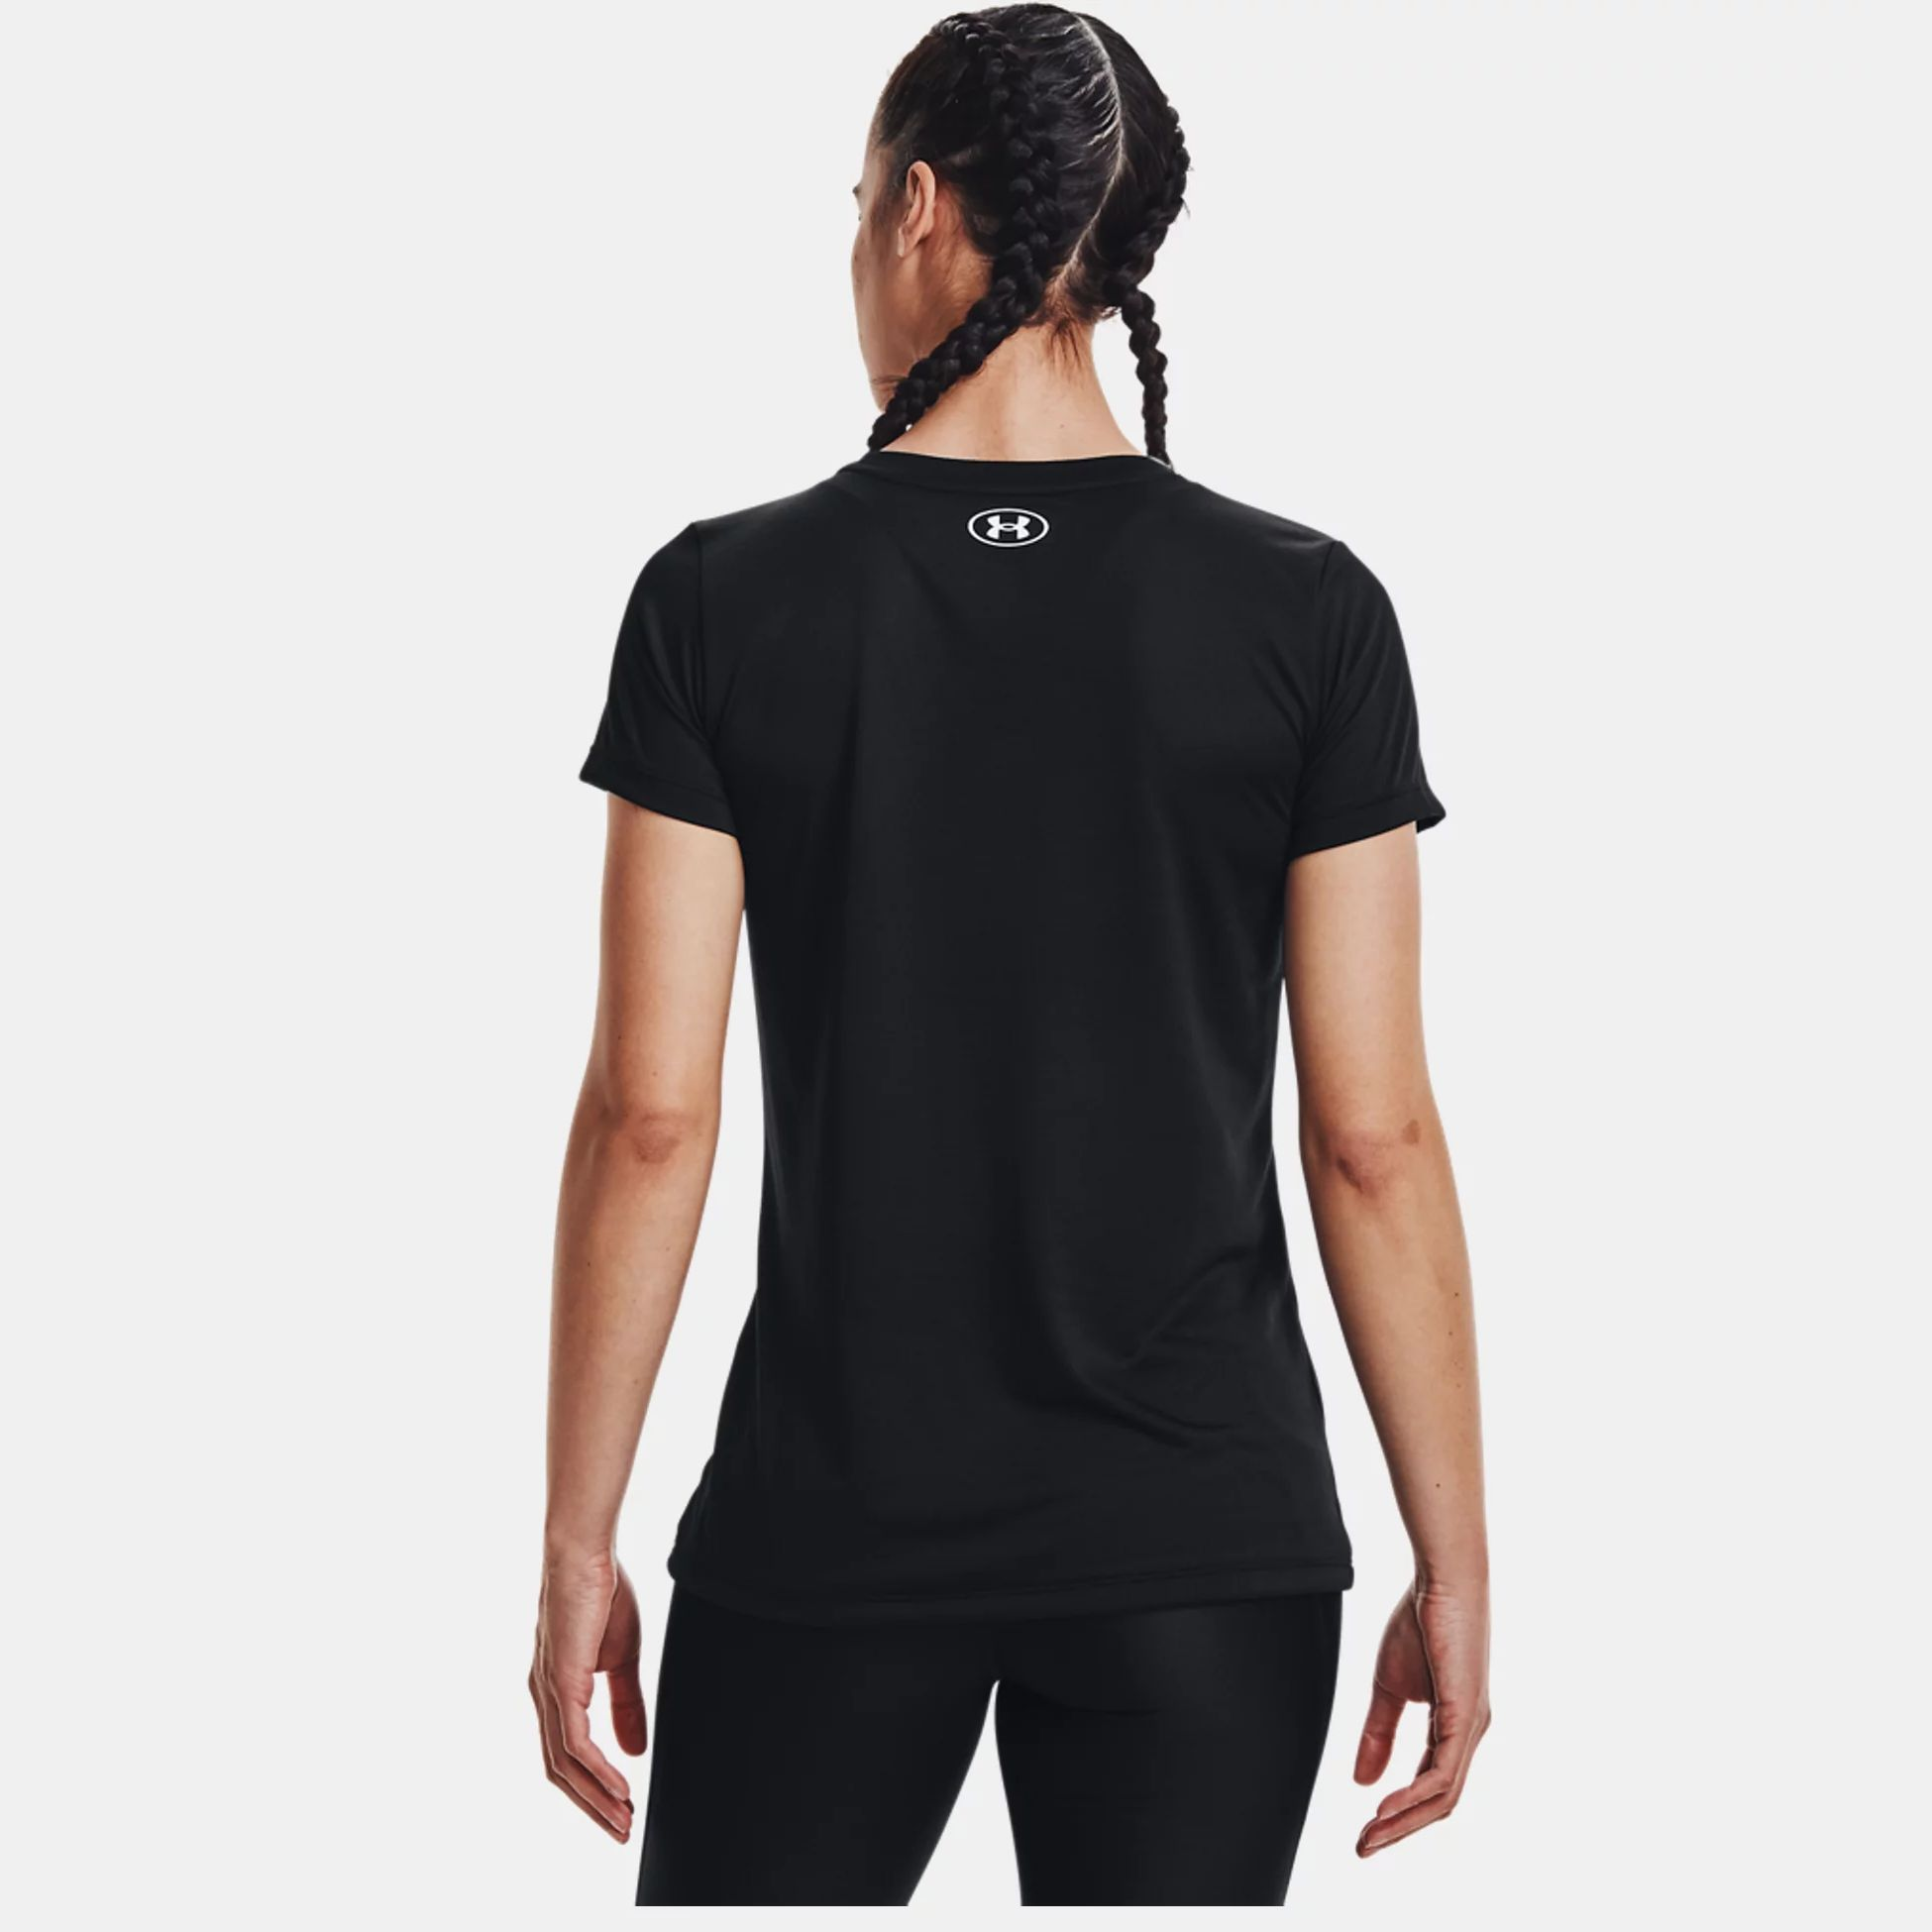 Clothing -  under armour UA Tech Graphic Short Sleeve 5143